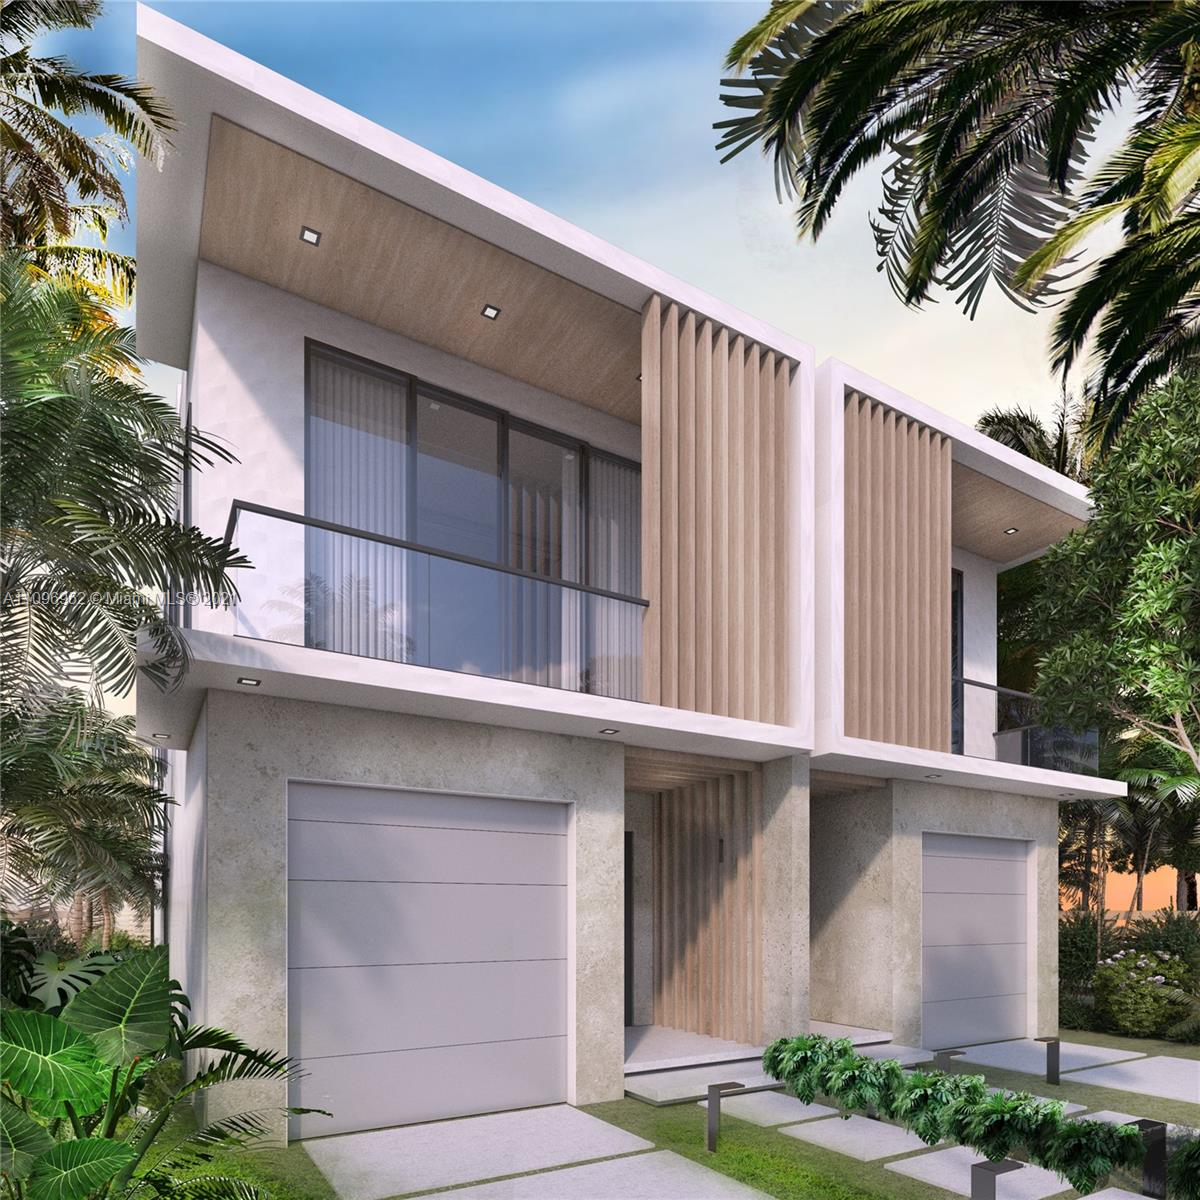 *Brand New Construction* Two – story, 2450 SQ FT modern Coconut Grove townhomes featuring additional 1000 SQ FT (+/-) private rooftop terraces with BBQ & trellis - perfect for entertaining. Exceptionally located in central Coconut Grove with 3 bedrooms / 3.5 bathrooms, and walk-in closets throughout. Expansive modern kitchens with stainless steel appliances, natural tones, premium finishes, high ceilings, and impact windows.  Find yourself living minutes from select destinations such as Coconut Grove's famed Cocowalk, Merrick Park, Coral Gables, Brickell, and the upcoming Grove Central Station & The Underline - providing walkable access to shopping, dining, and Miami's Metrorail via a landscaped pedestrian pathway. Estimated completion September 2022.